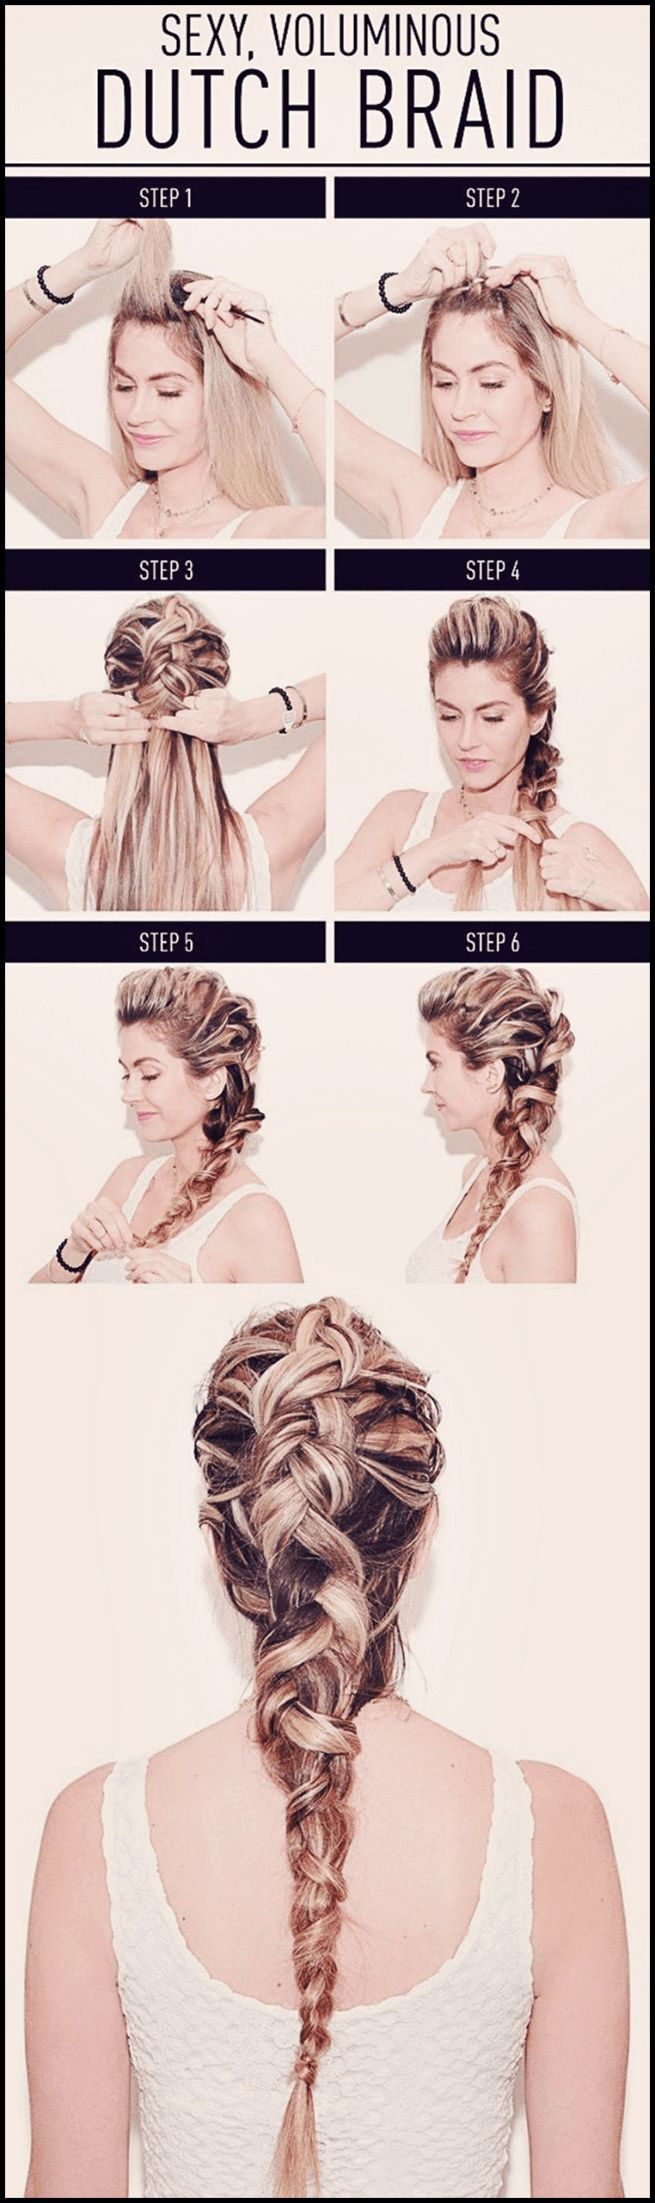 Steps shown in achieving the sexy voluminous dutch braid